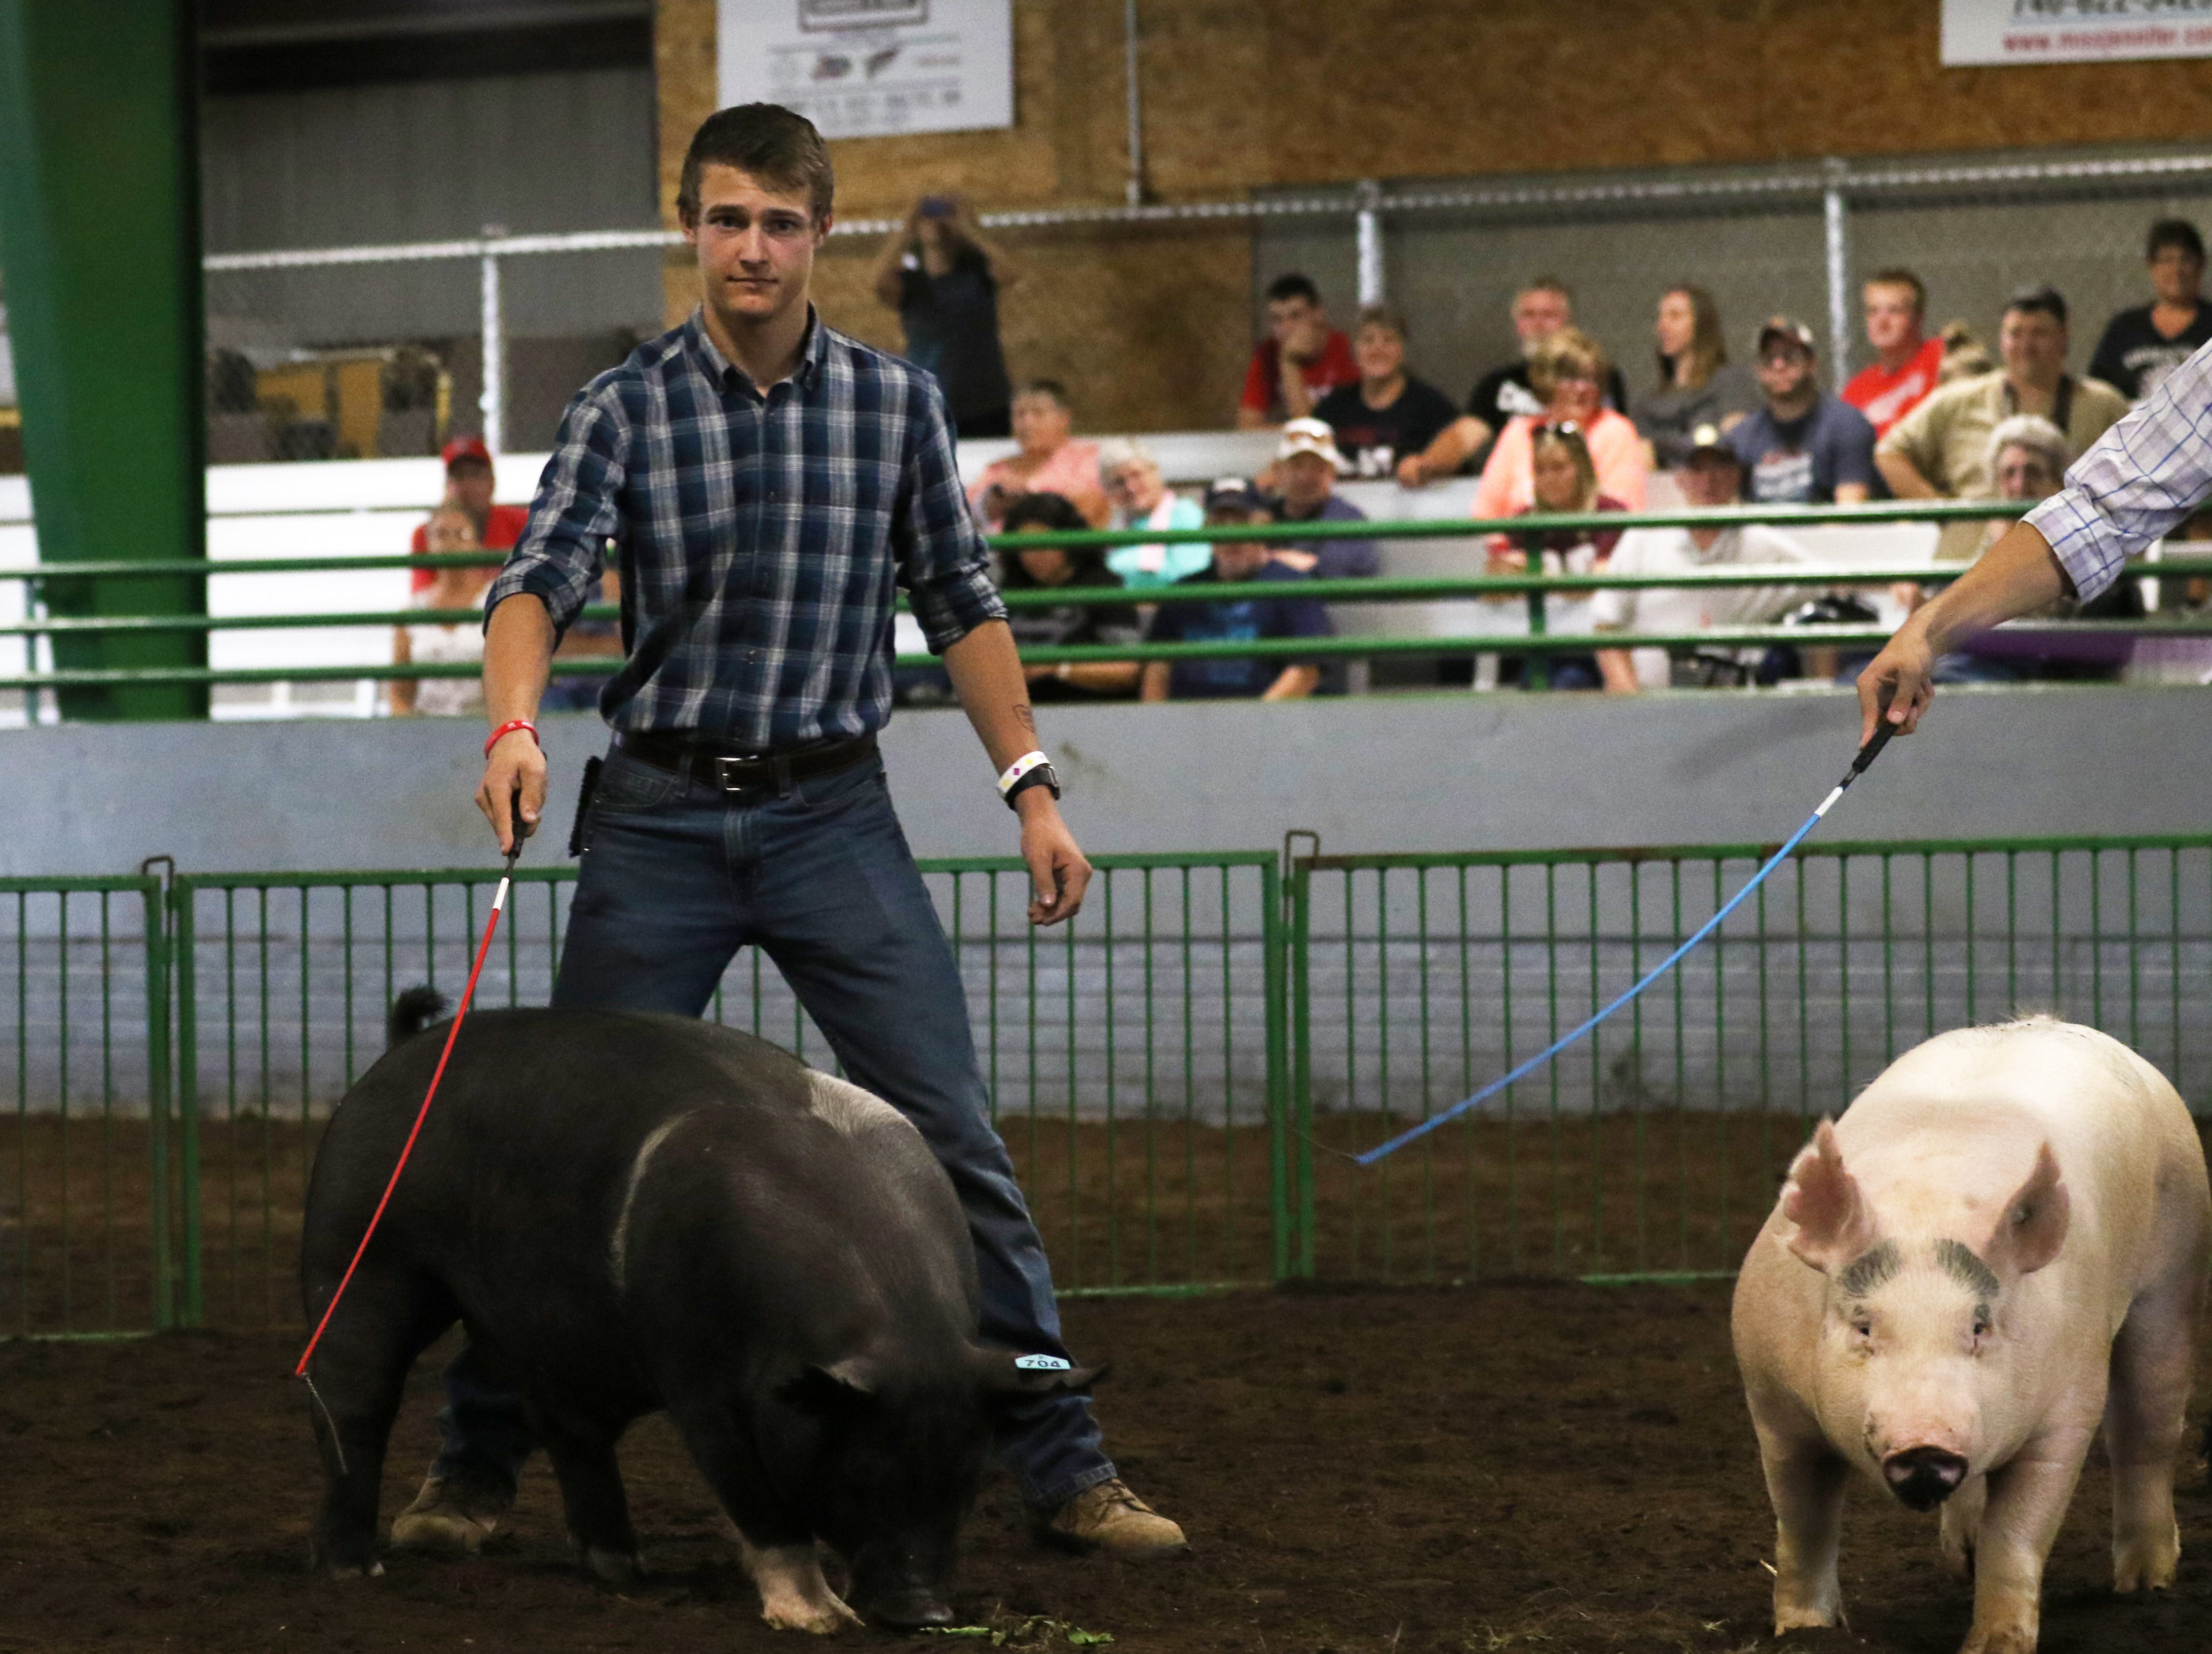 Ty Collins shows a hog during the Showman of Showmen at the Coshocton County Fair on Wednesday.